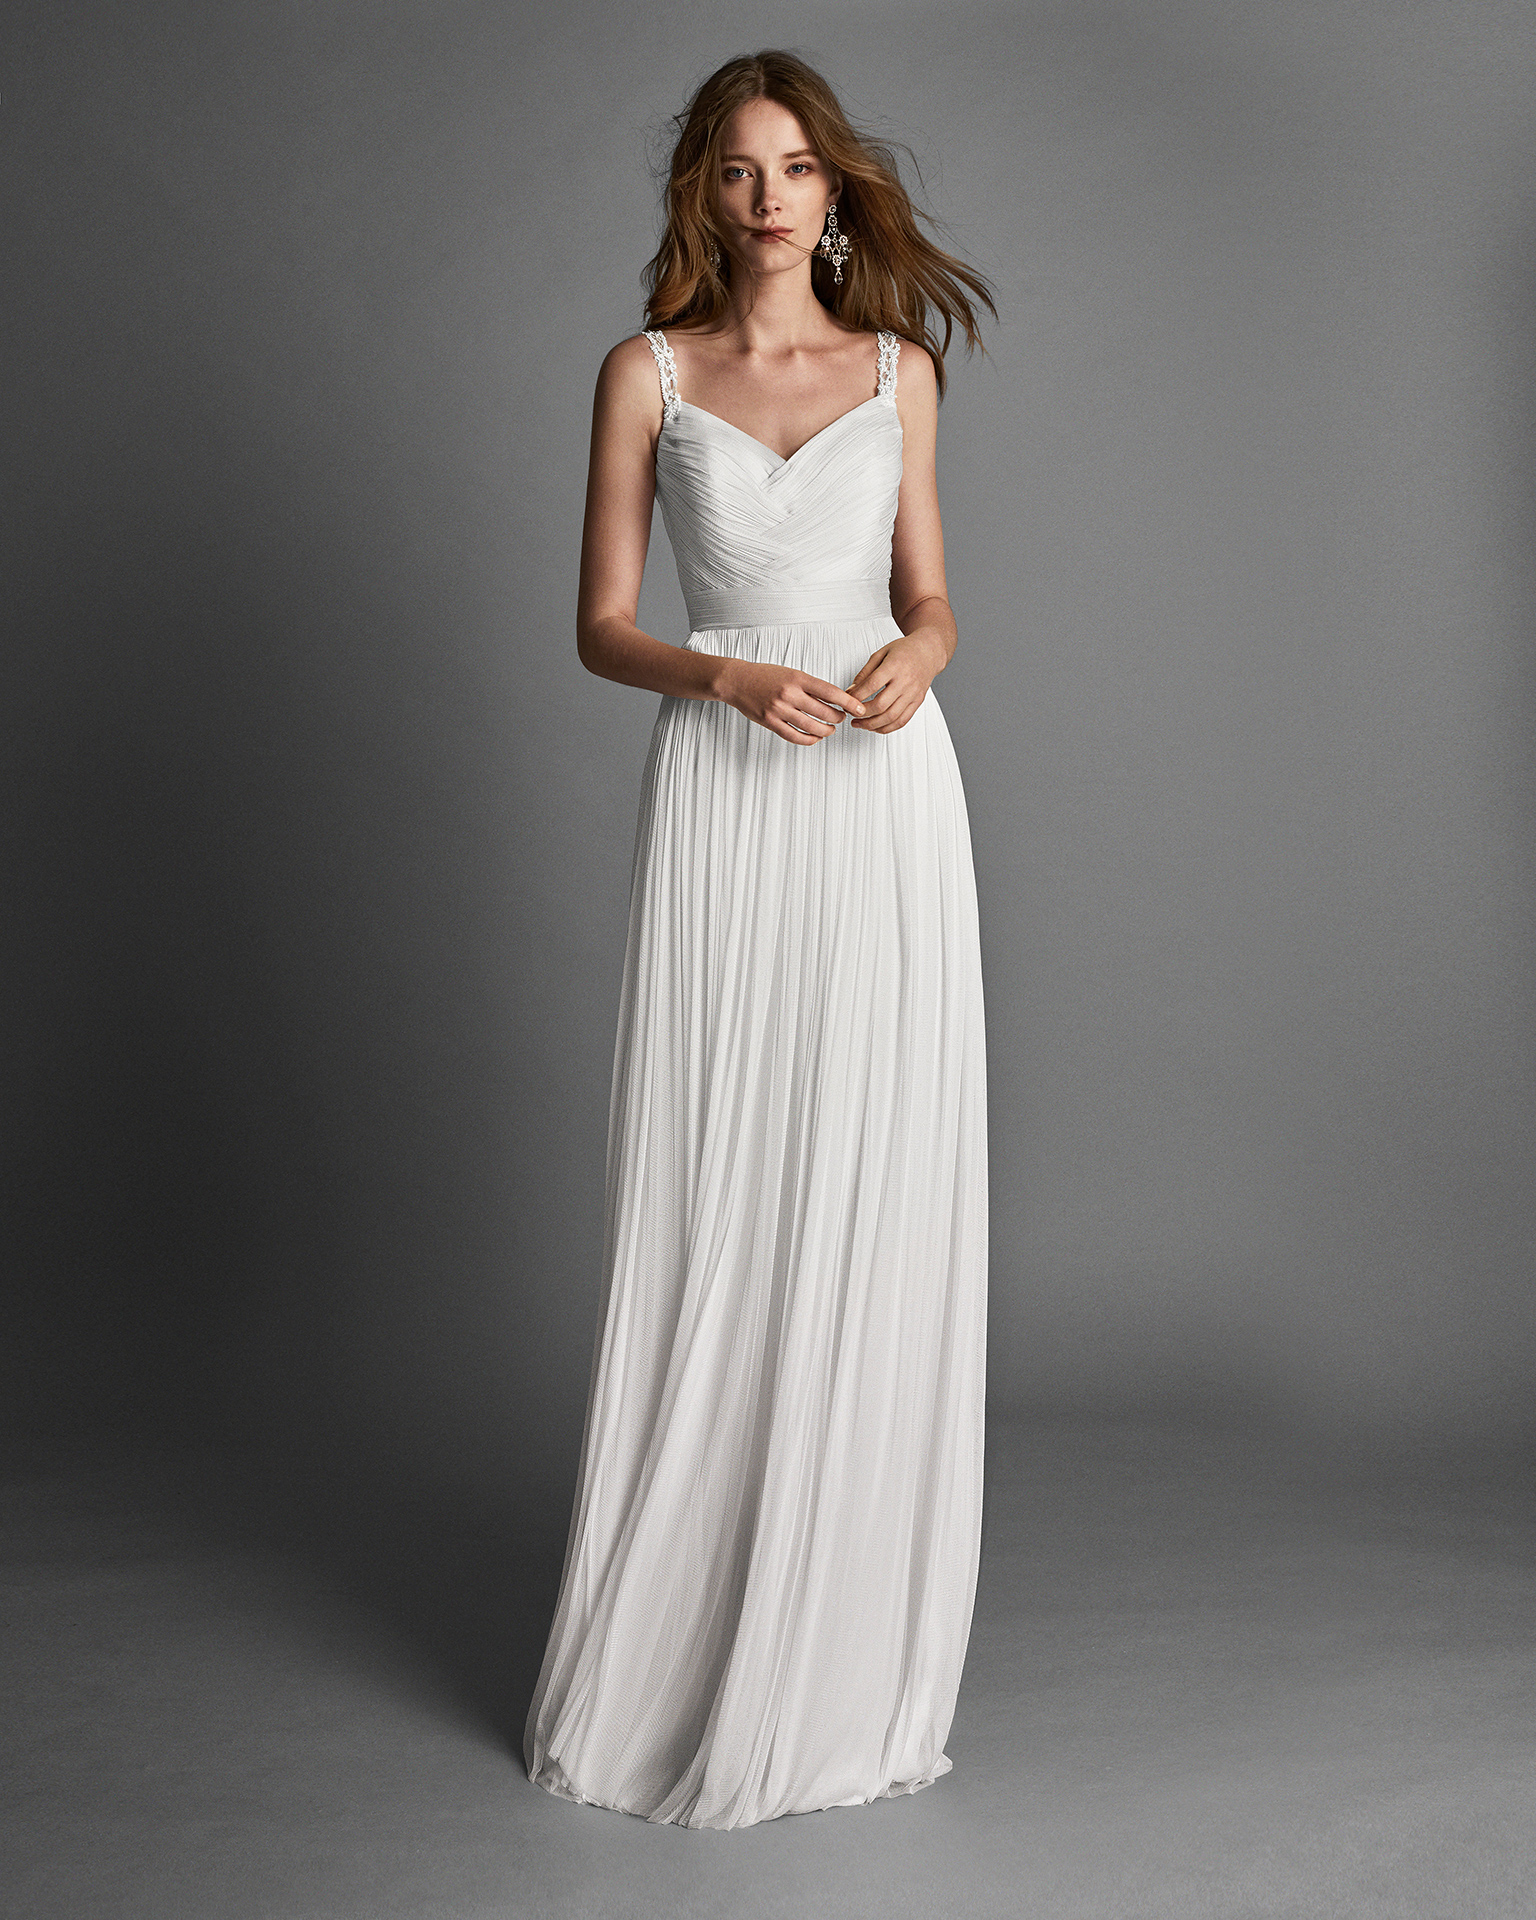 Muslin sheath wedding dress with jewelled back and beadwork detail.